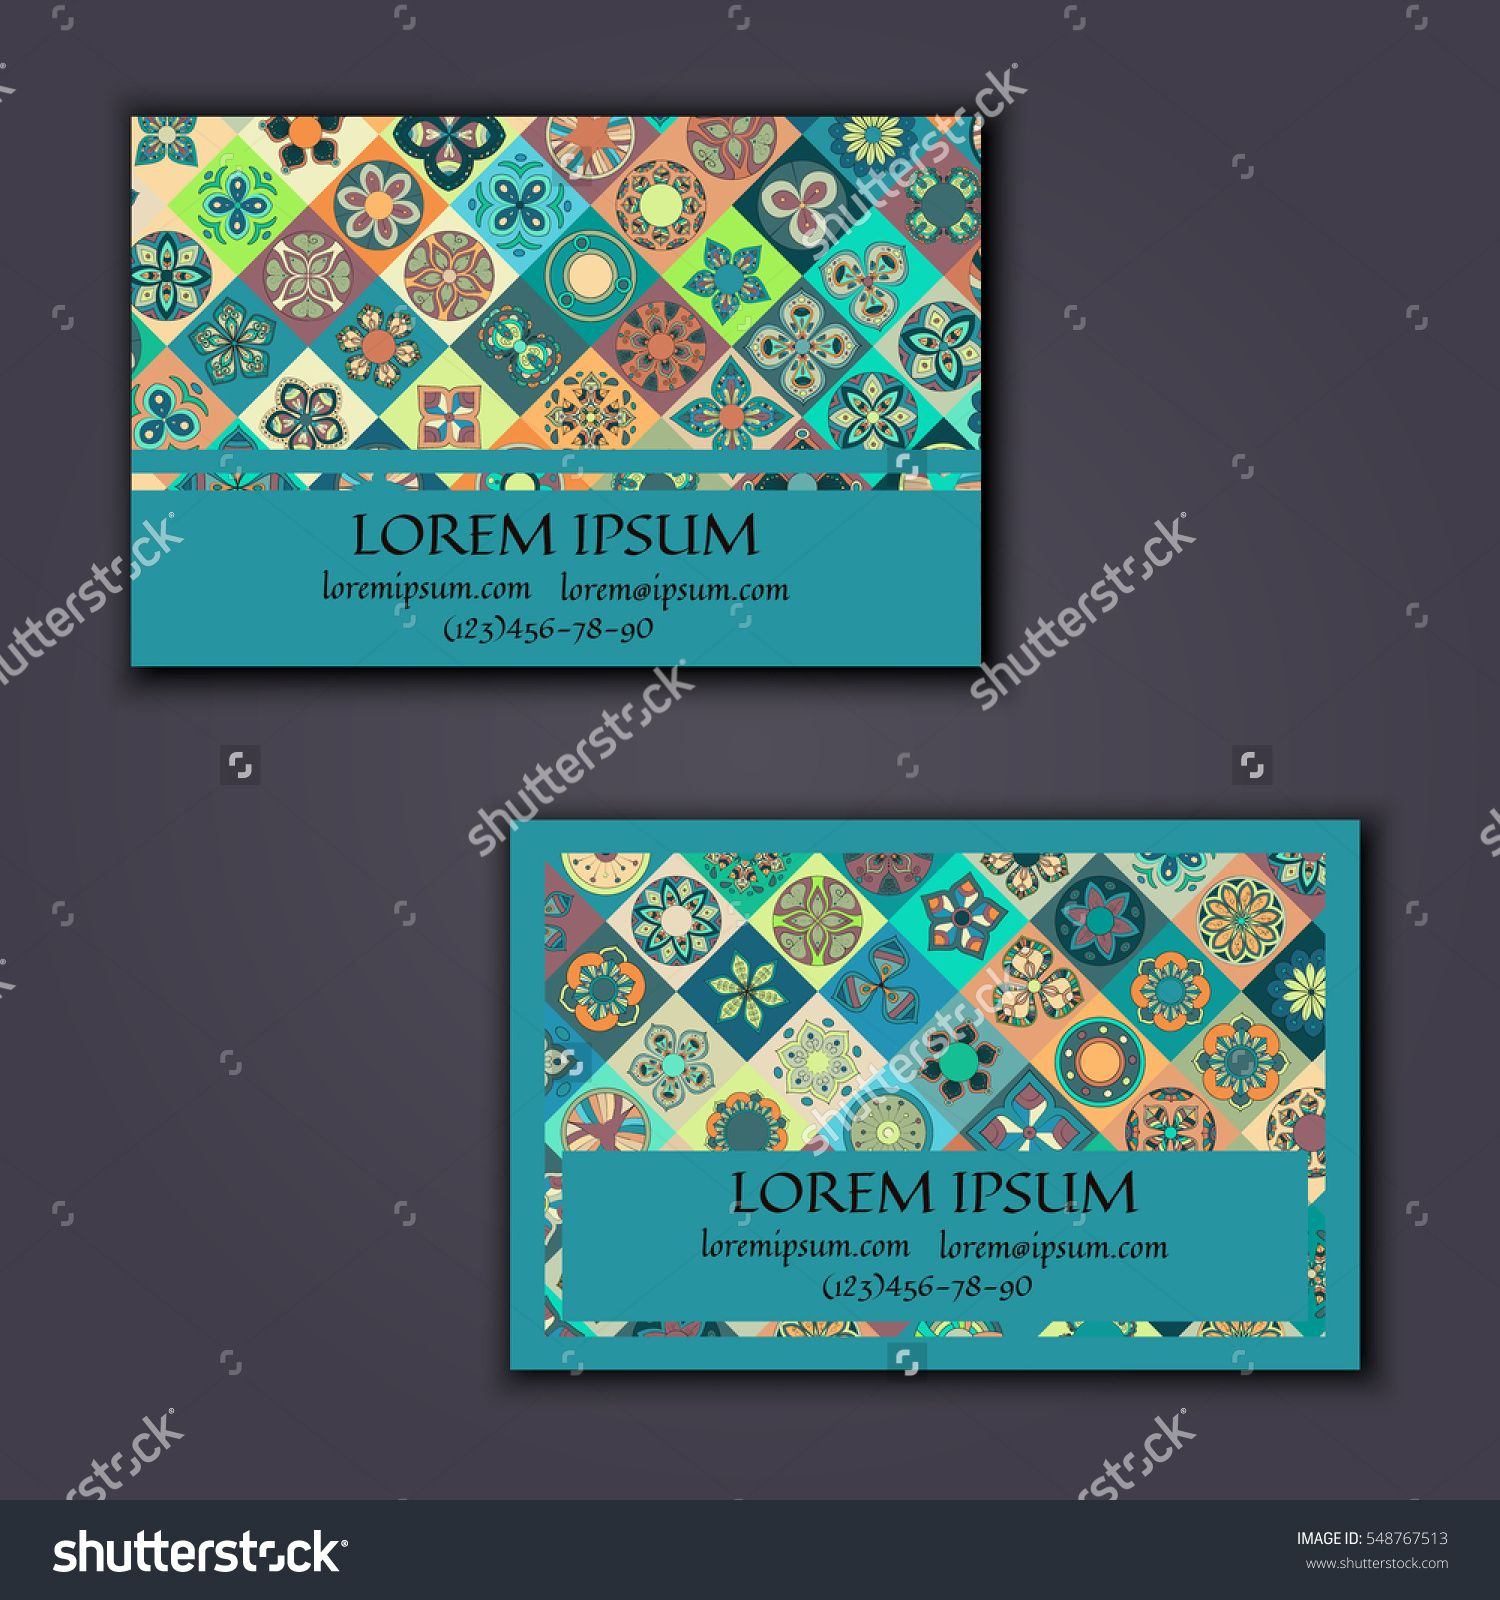 Vector Business Card Design Template With Ornamental Geometric